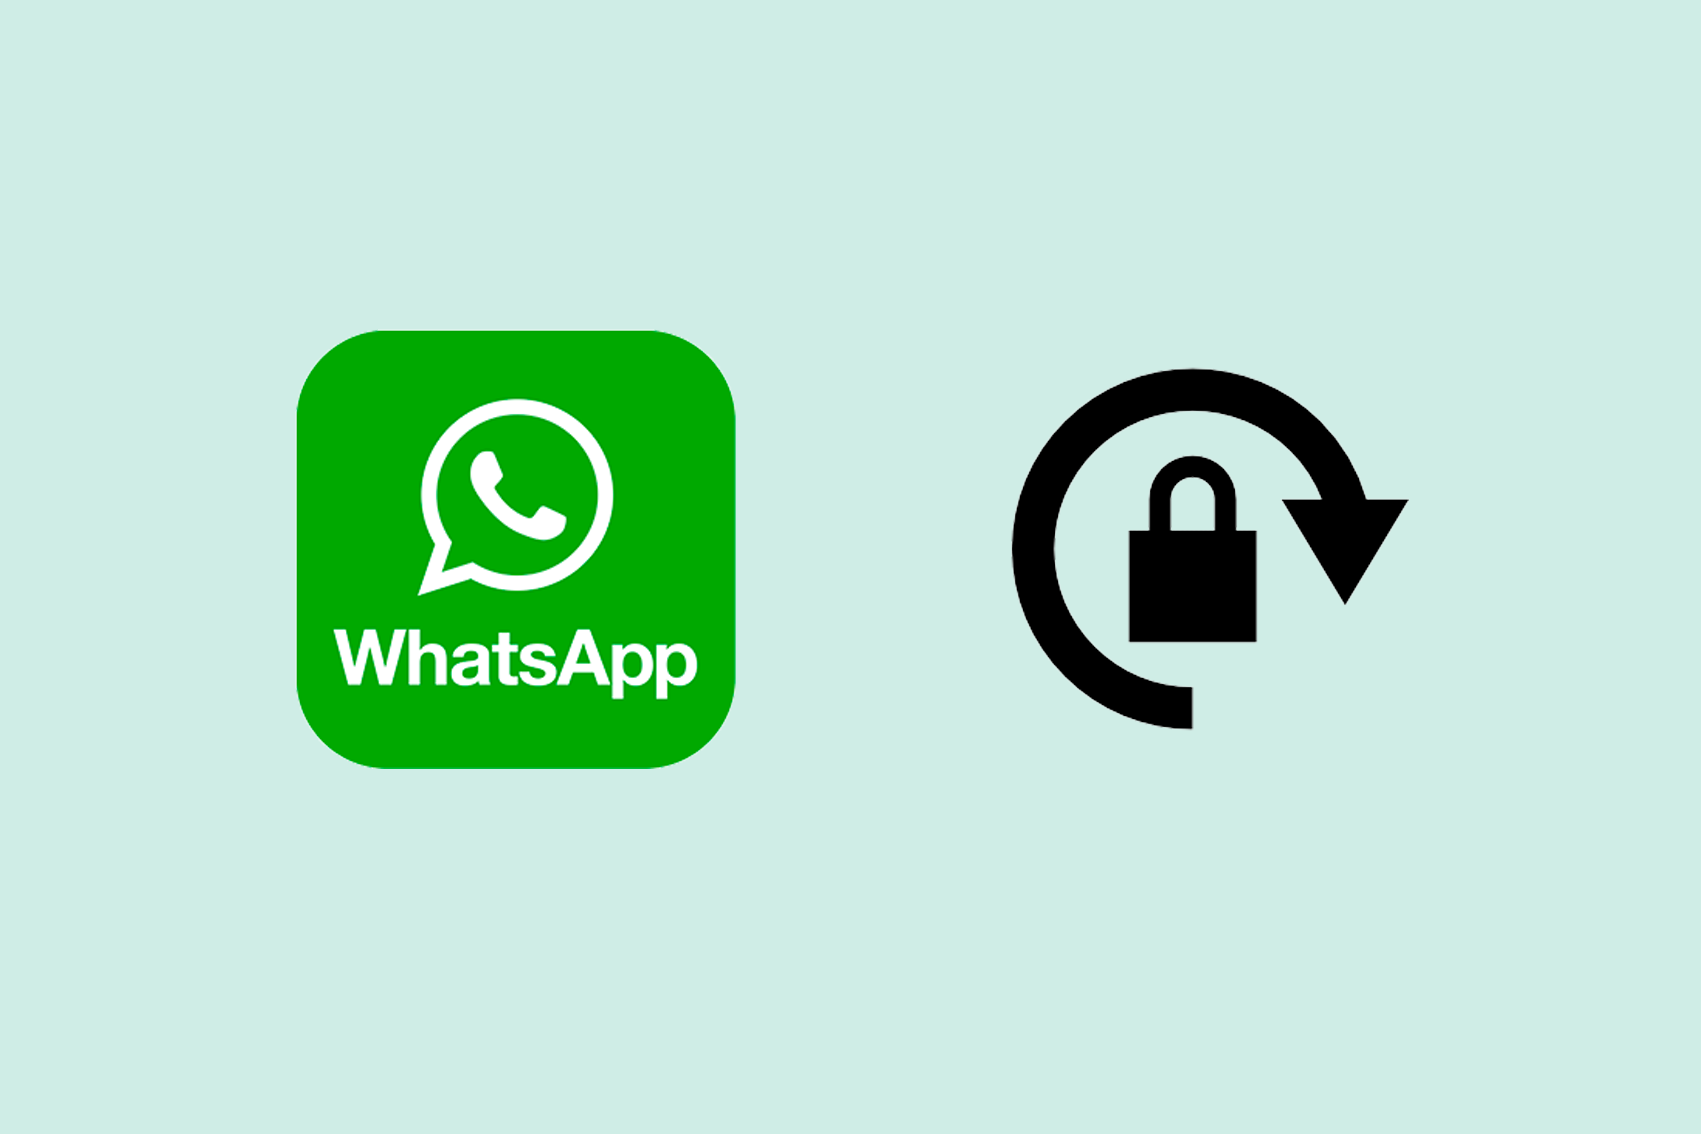 Как поставить пароль на WhatsApp на Android